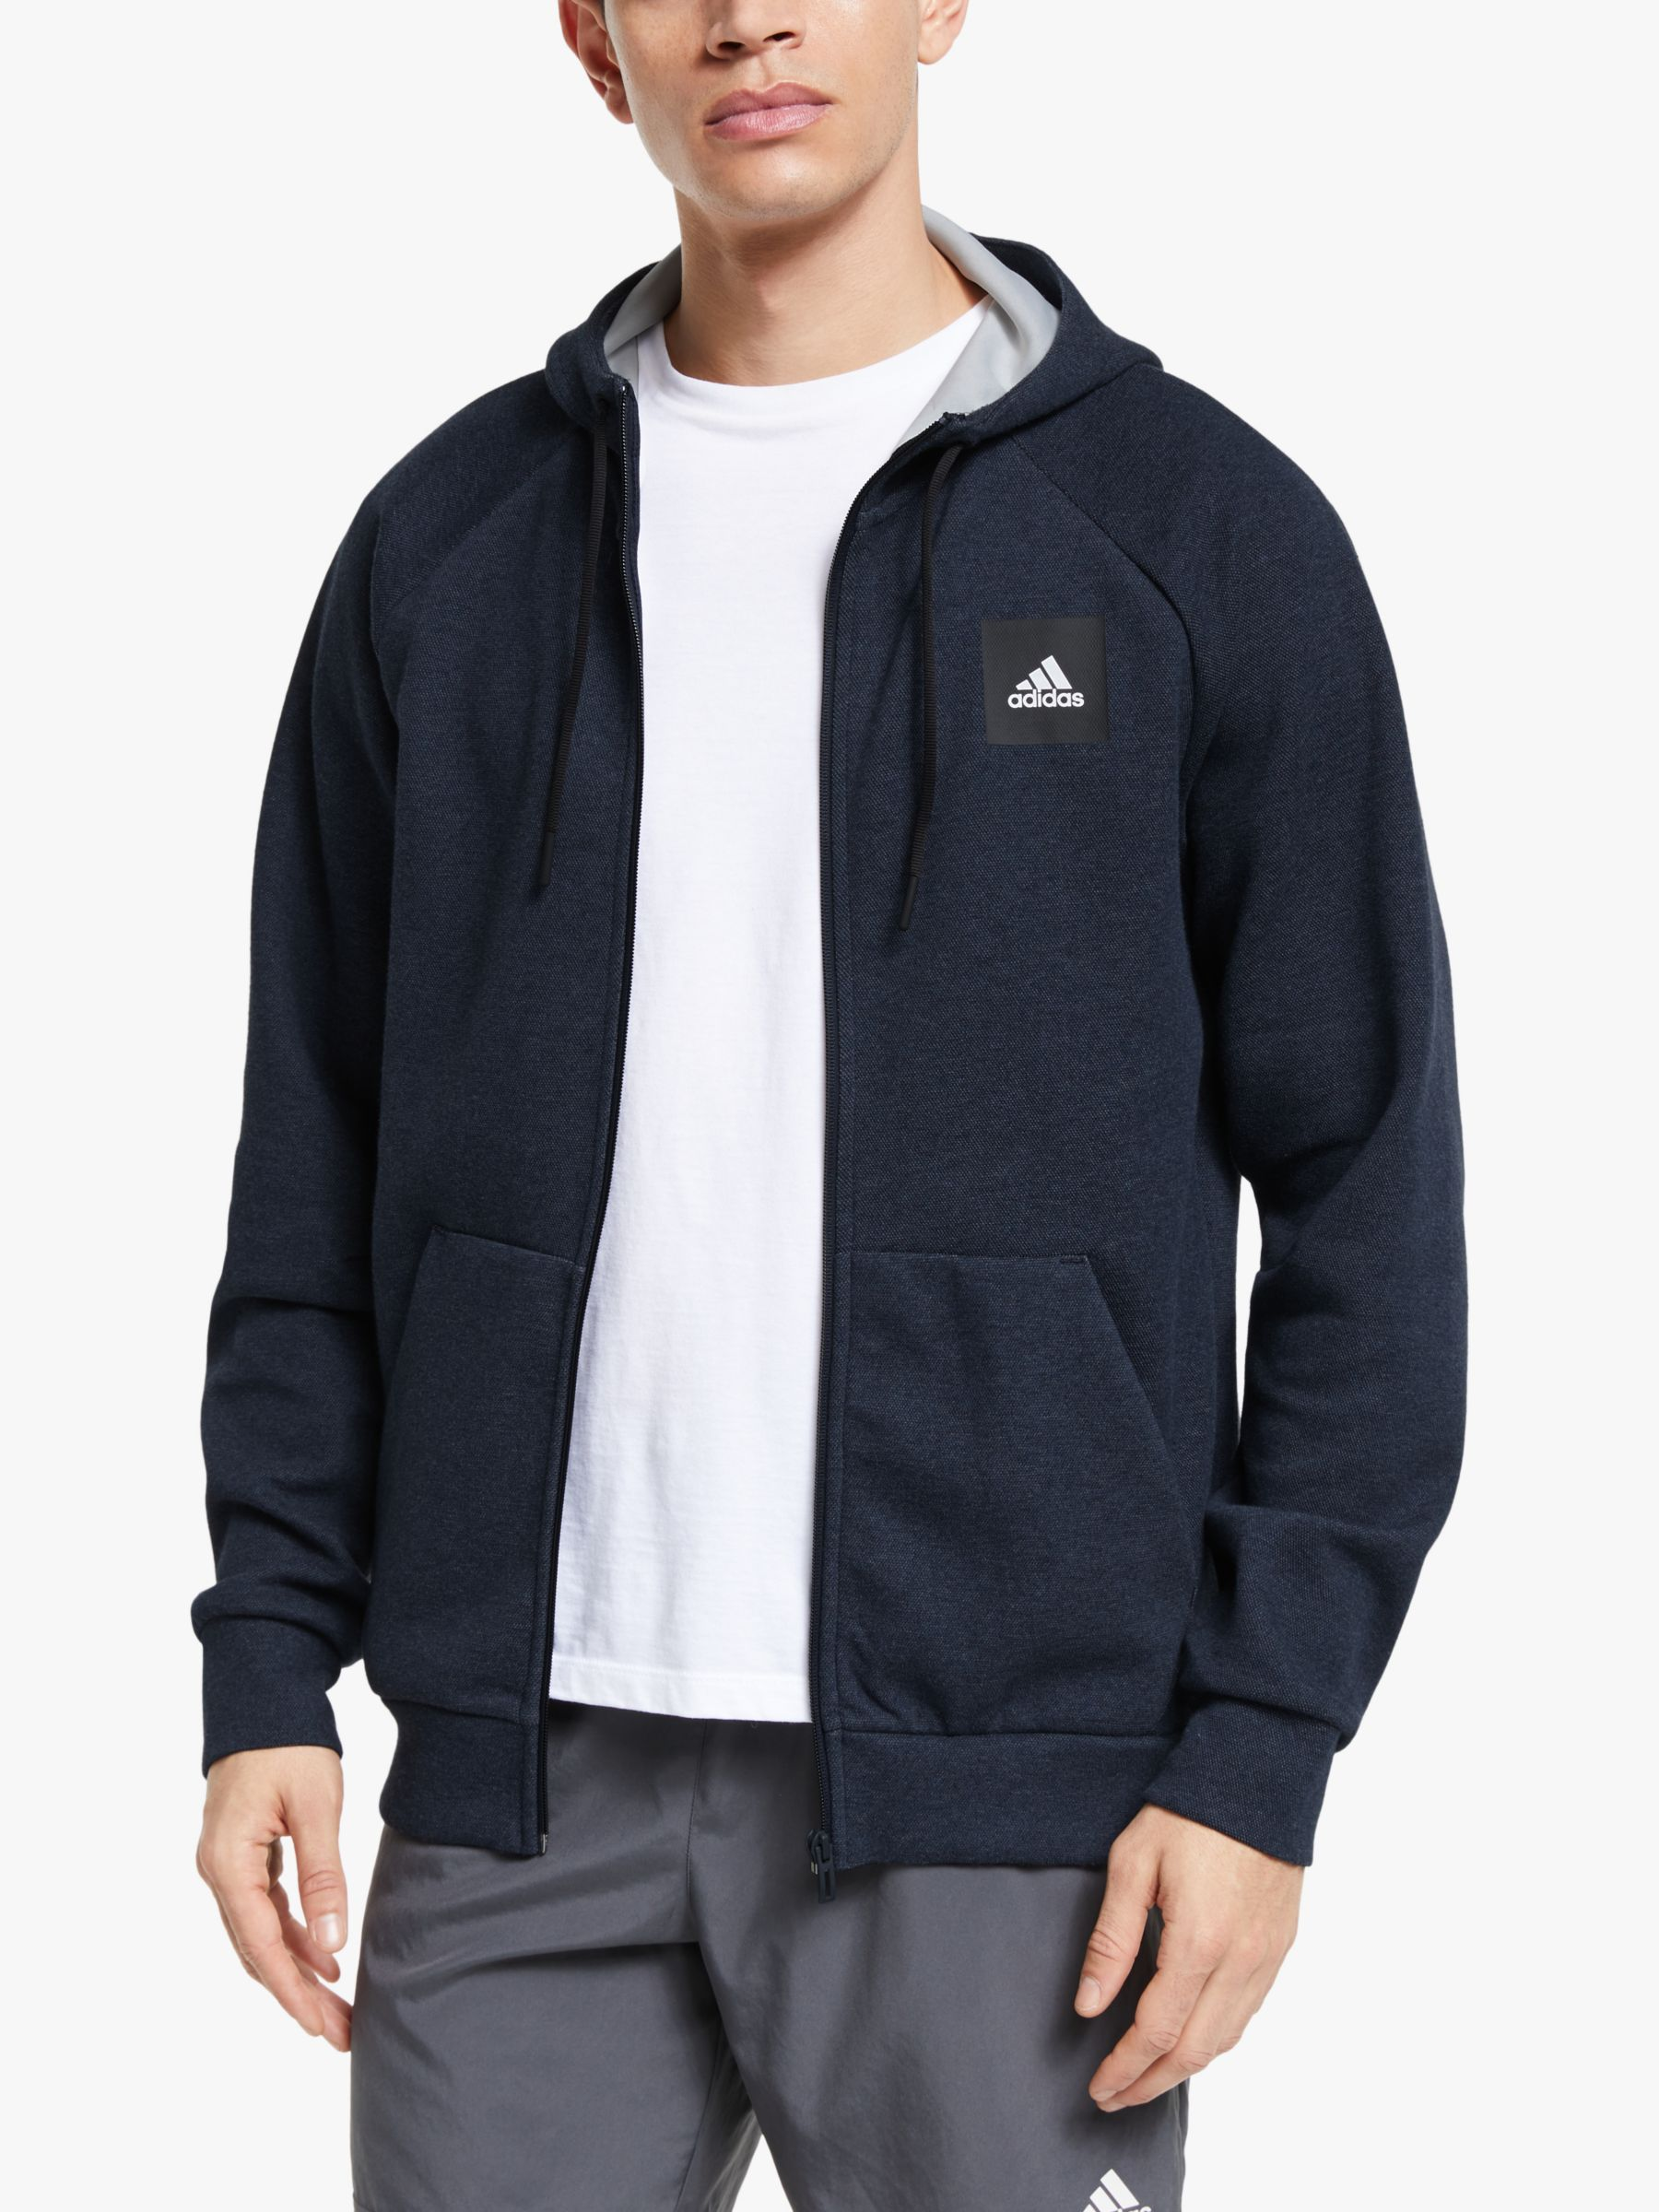 Adidas adidas Must Haves Stadium Full Zip Hoodie, Legend Ink Metallic